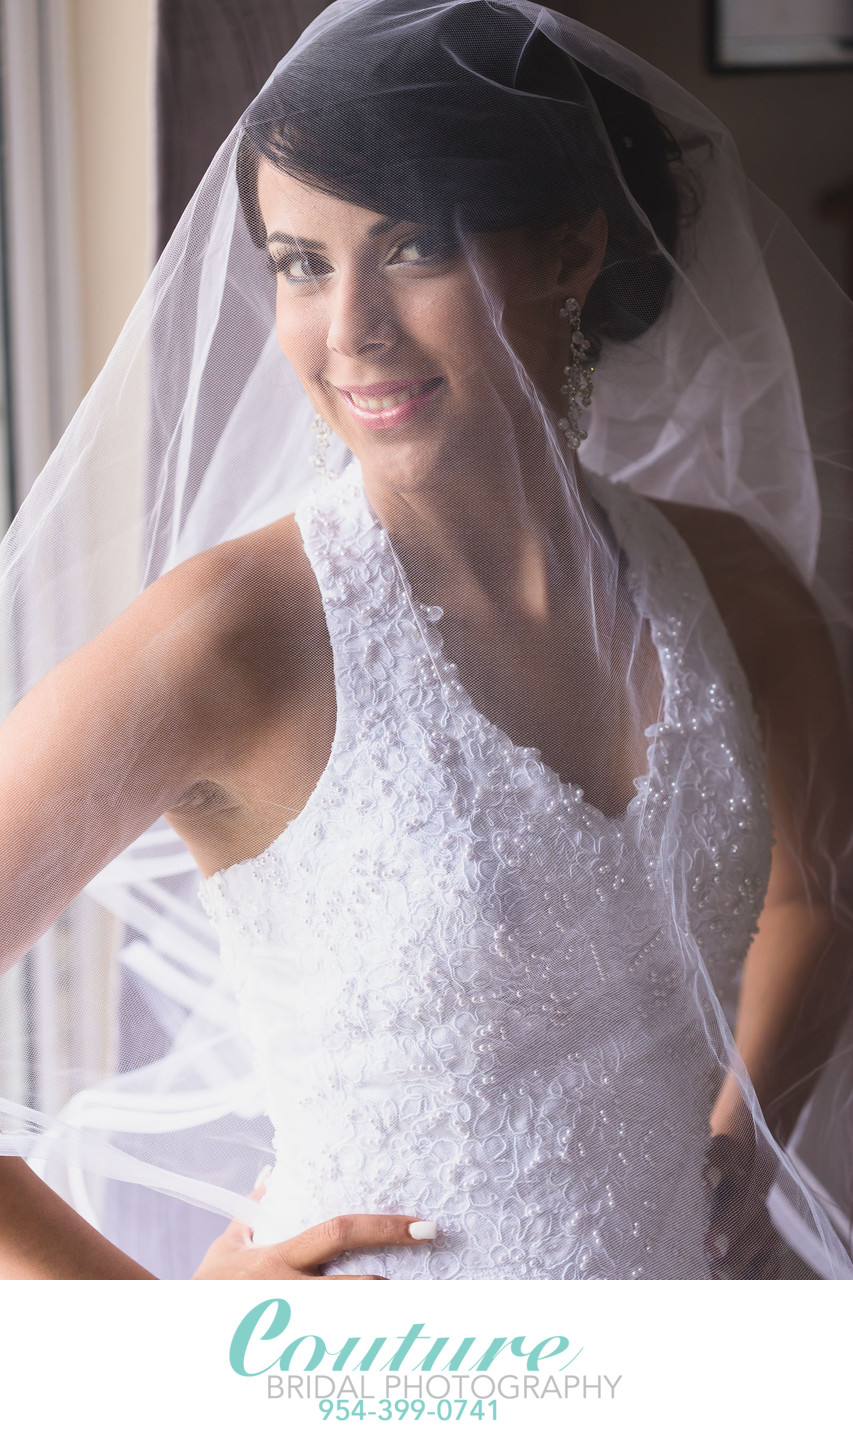 FORT LAUDERDALE WEDDING & BRIDAL PORTRAIT PHOTOGRAPHY